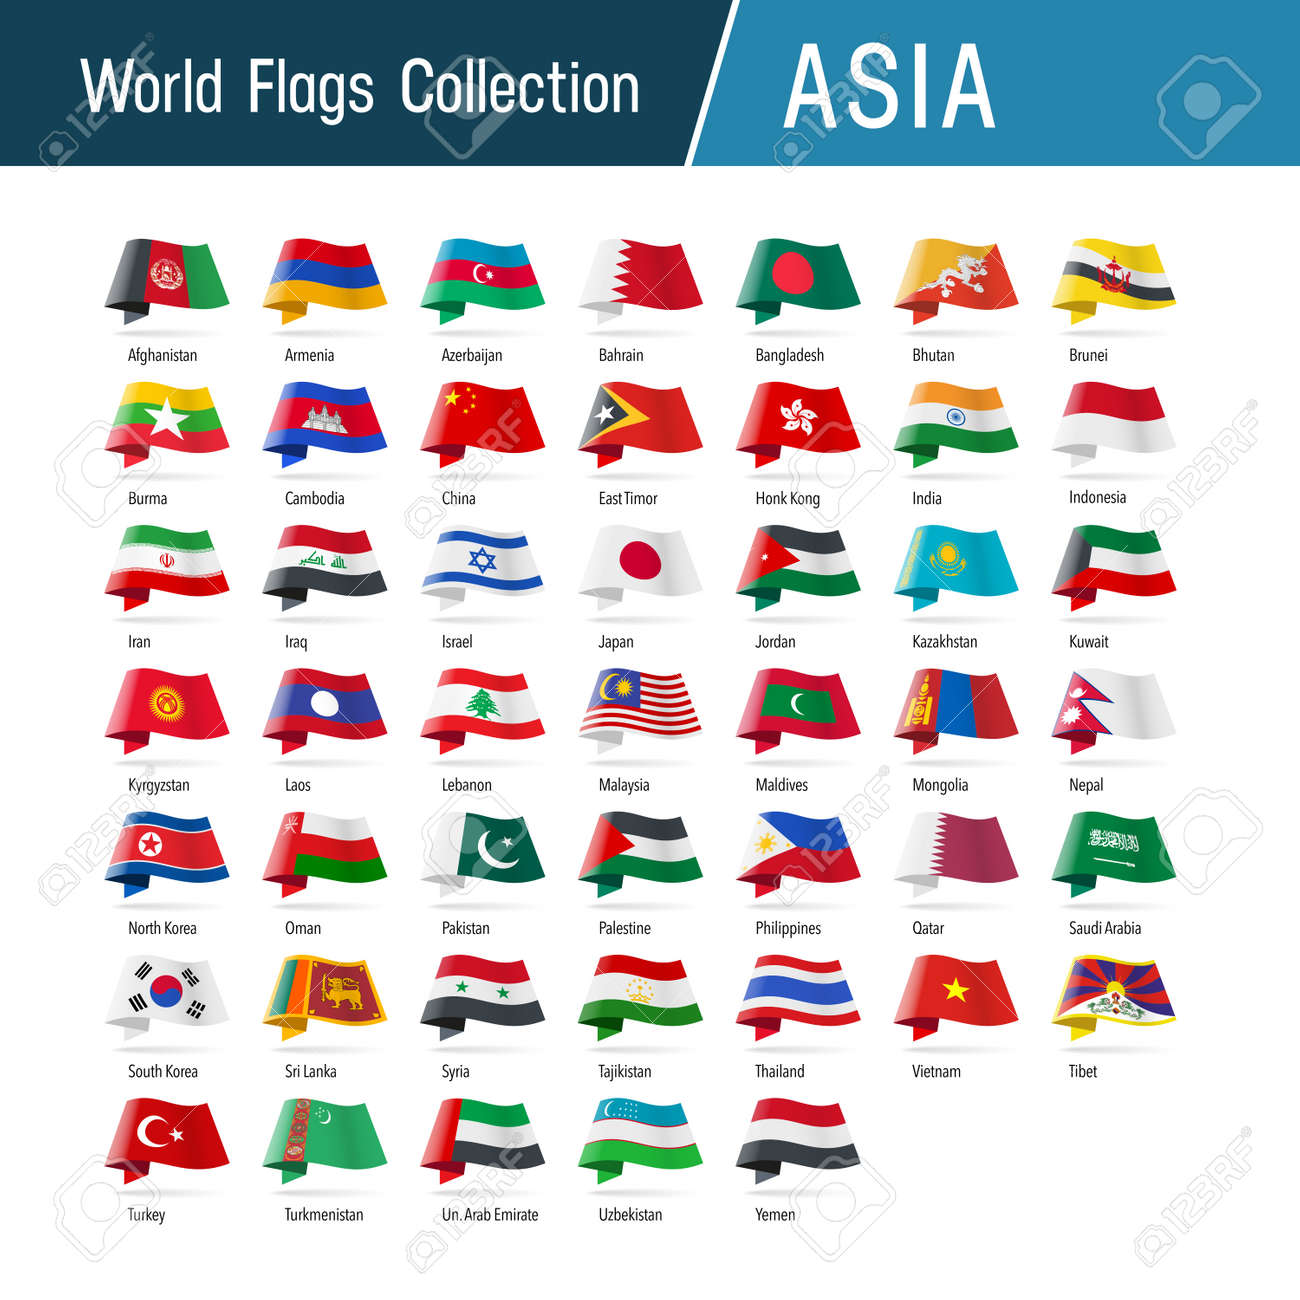 Flags of Asia, waving in the wind. Icons pointing location, origin, language. Vector world flags collection. - 163395408